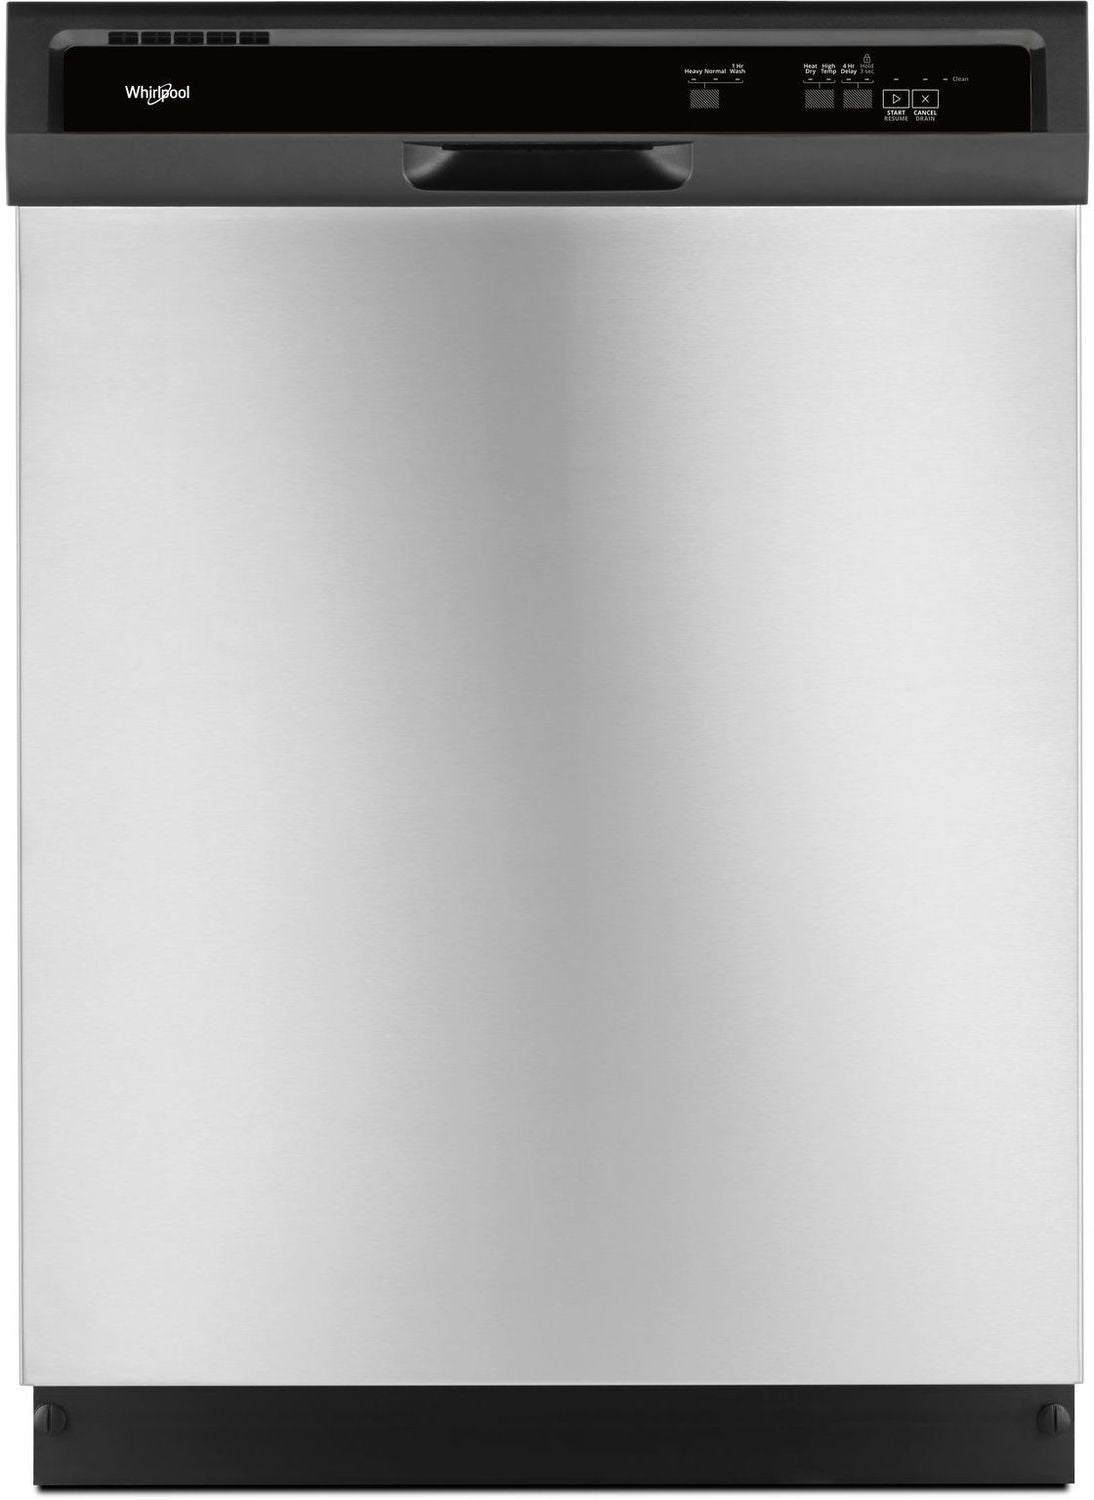 Whirlpool Stainless Steel 24 Dishwasher Wdf330pahs Leon S